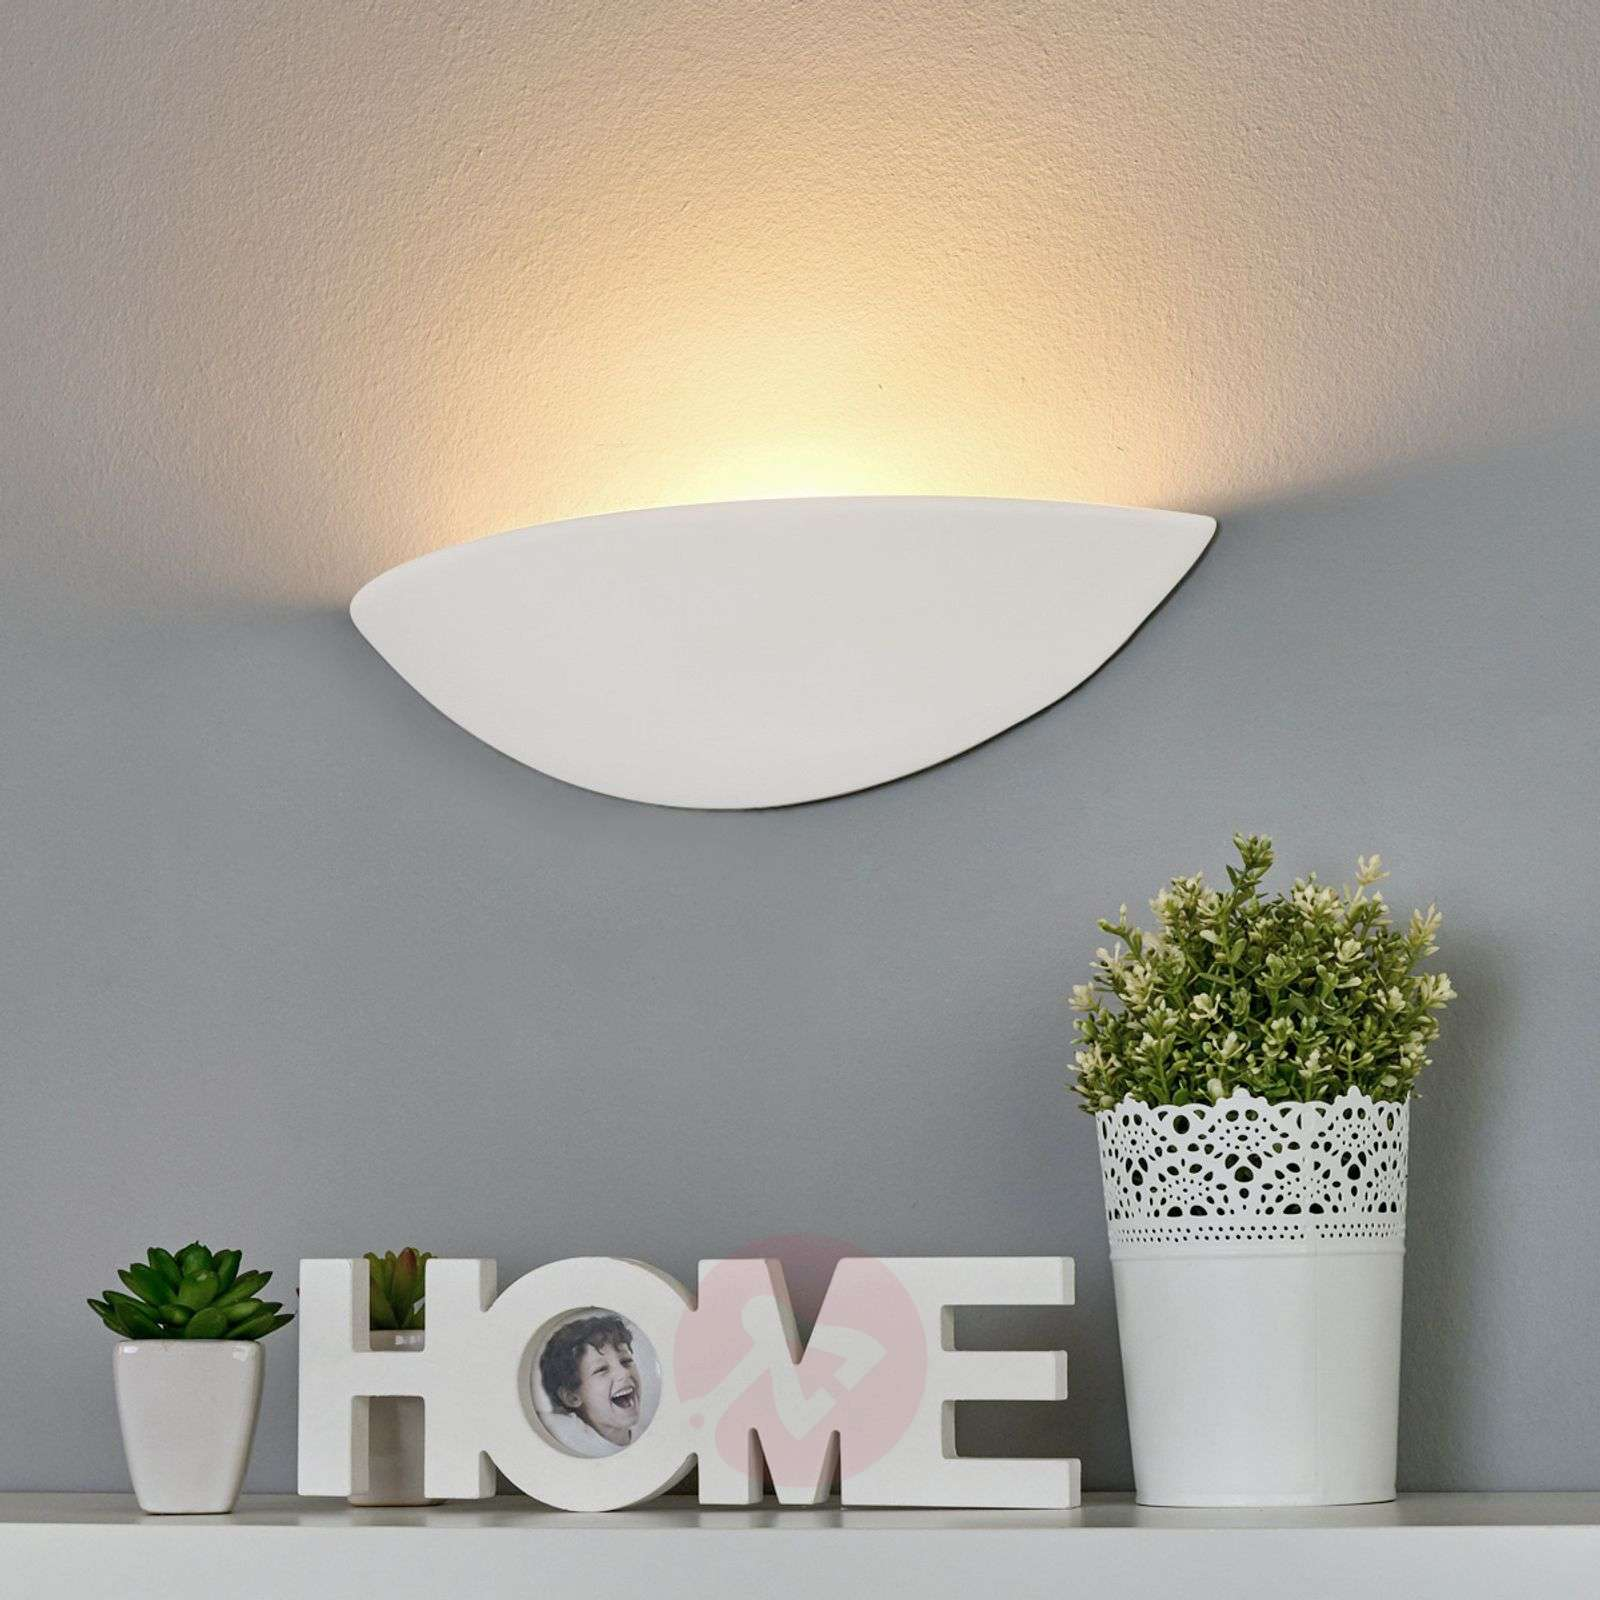 Applique LED in gesso PALE, verniciabile-8570466-01